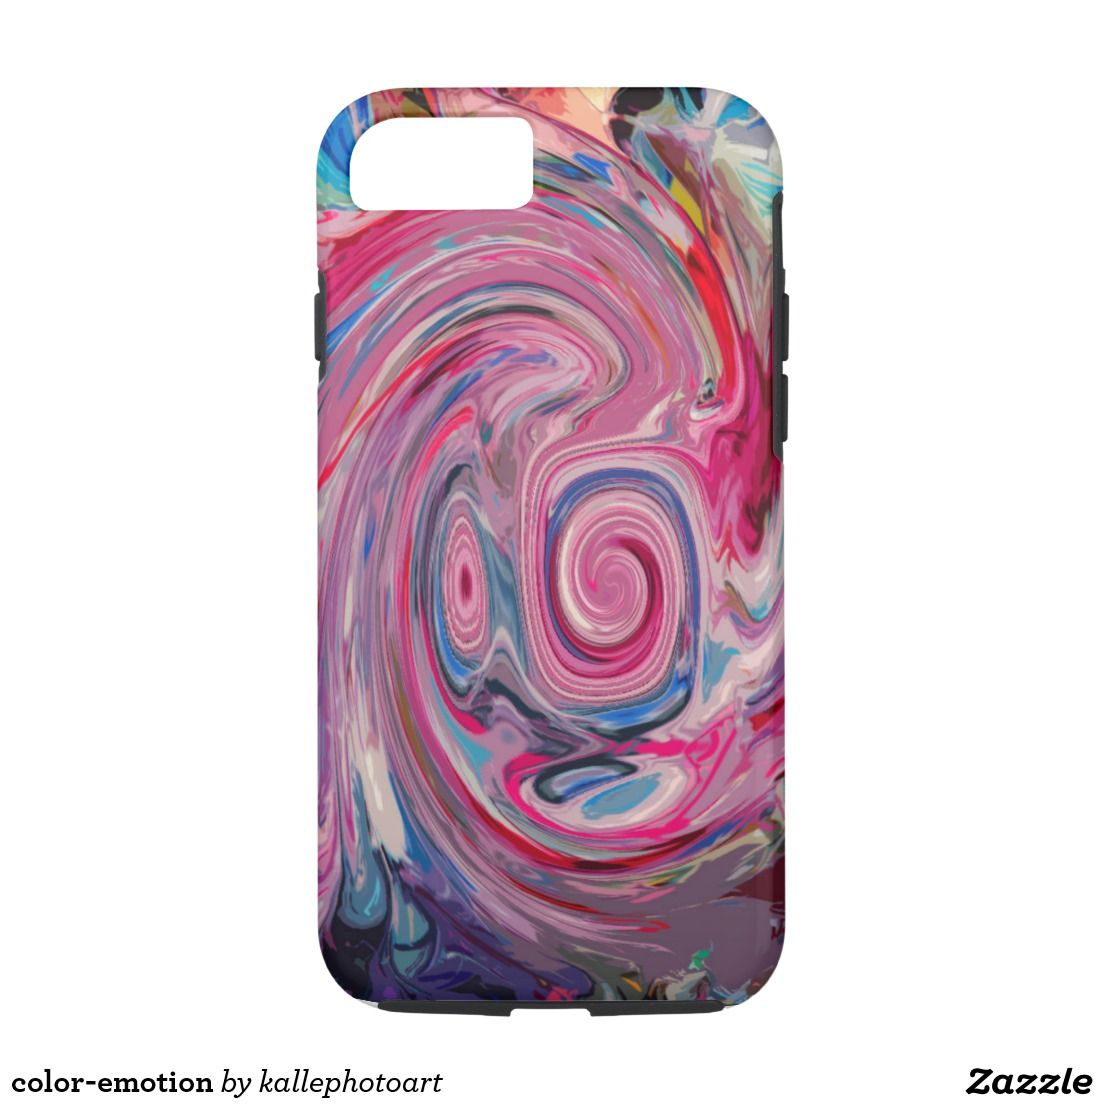 color-emotion iPhone 7 case